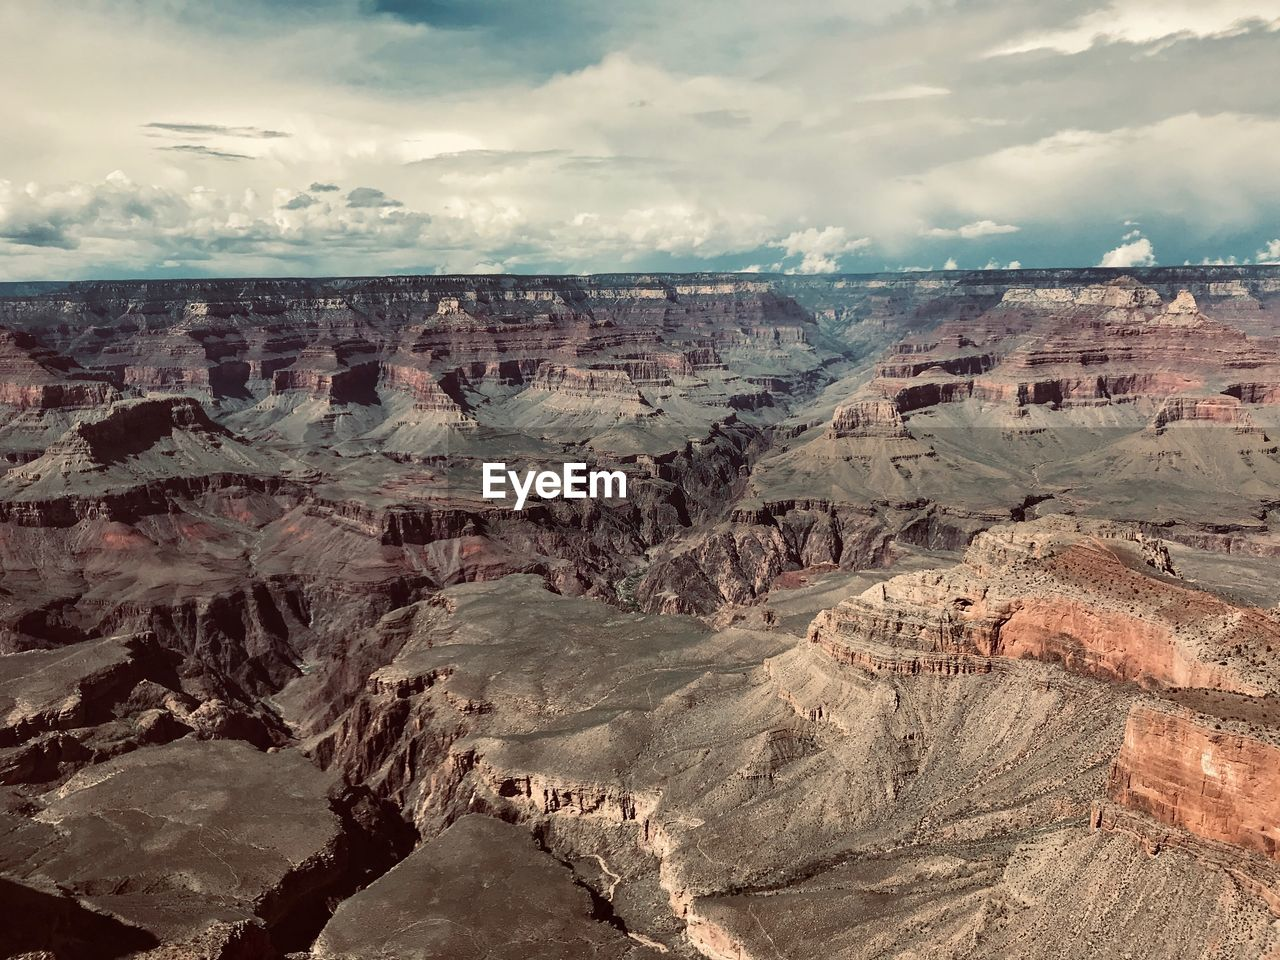 scenics - nature, cloud - sky, sky, landscape, tranquil scene, beauty in nature, environment, tranquility, rock, non-urban scene, physical geography, nature, geology, rock - object, rock formation, no people, remote, travel destinations, arid climate, climate, dramatic landscape, outdoors, eroded, formation